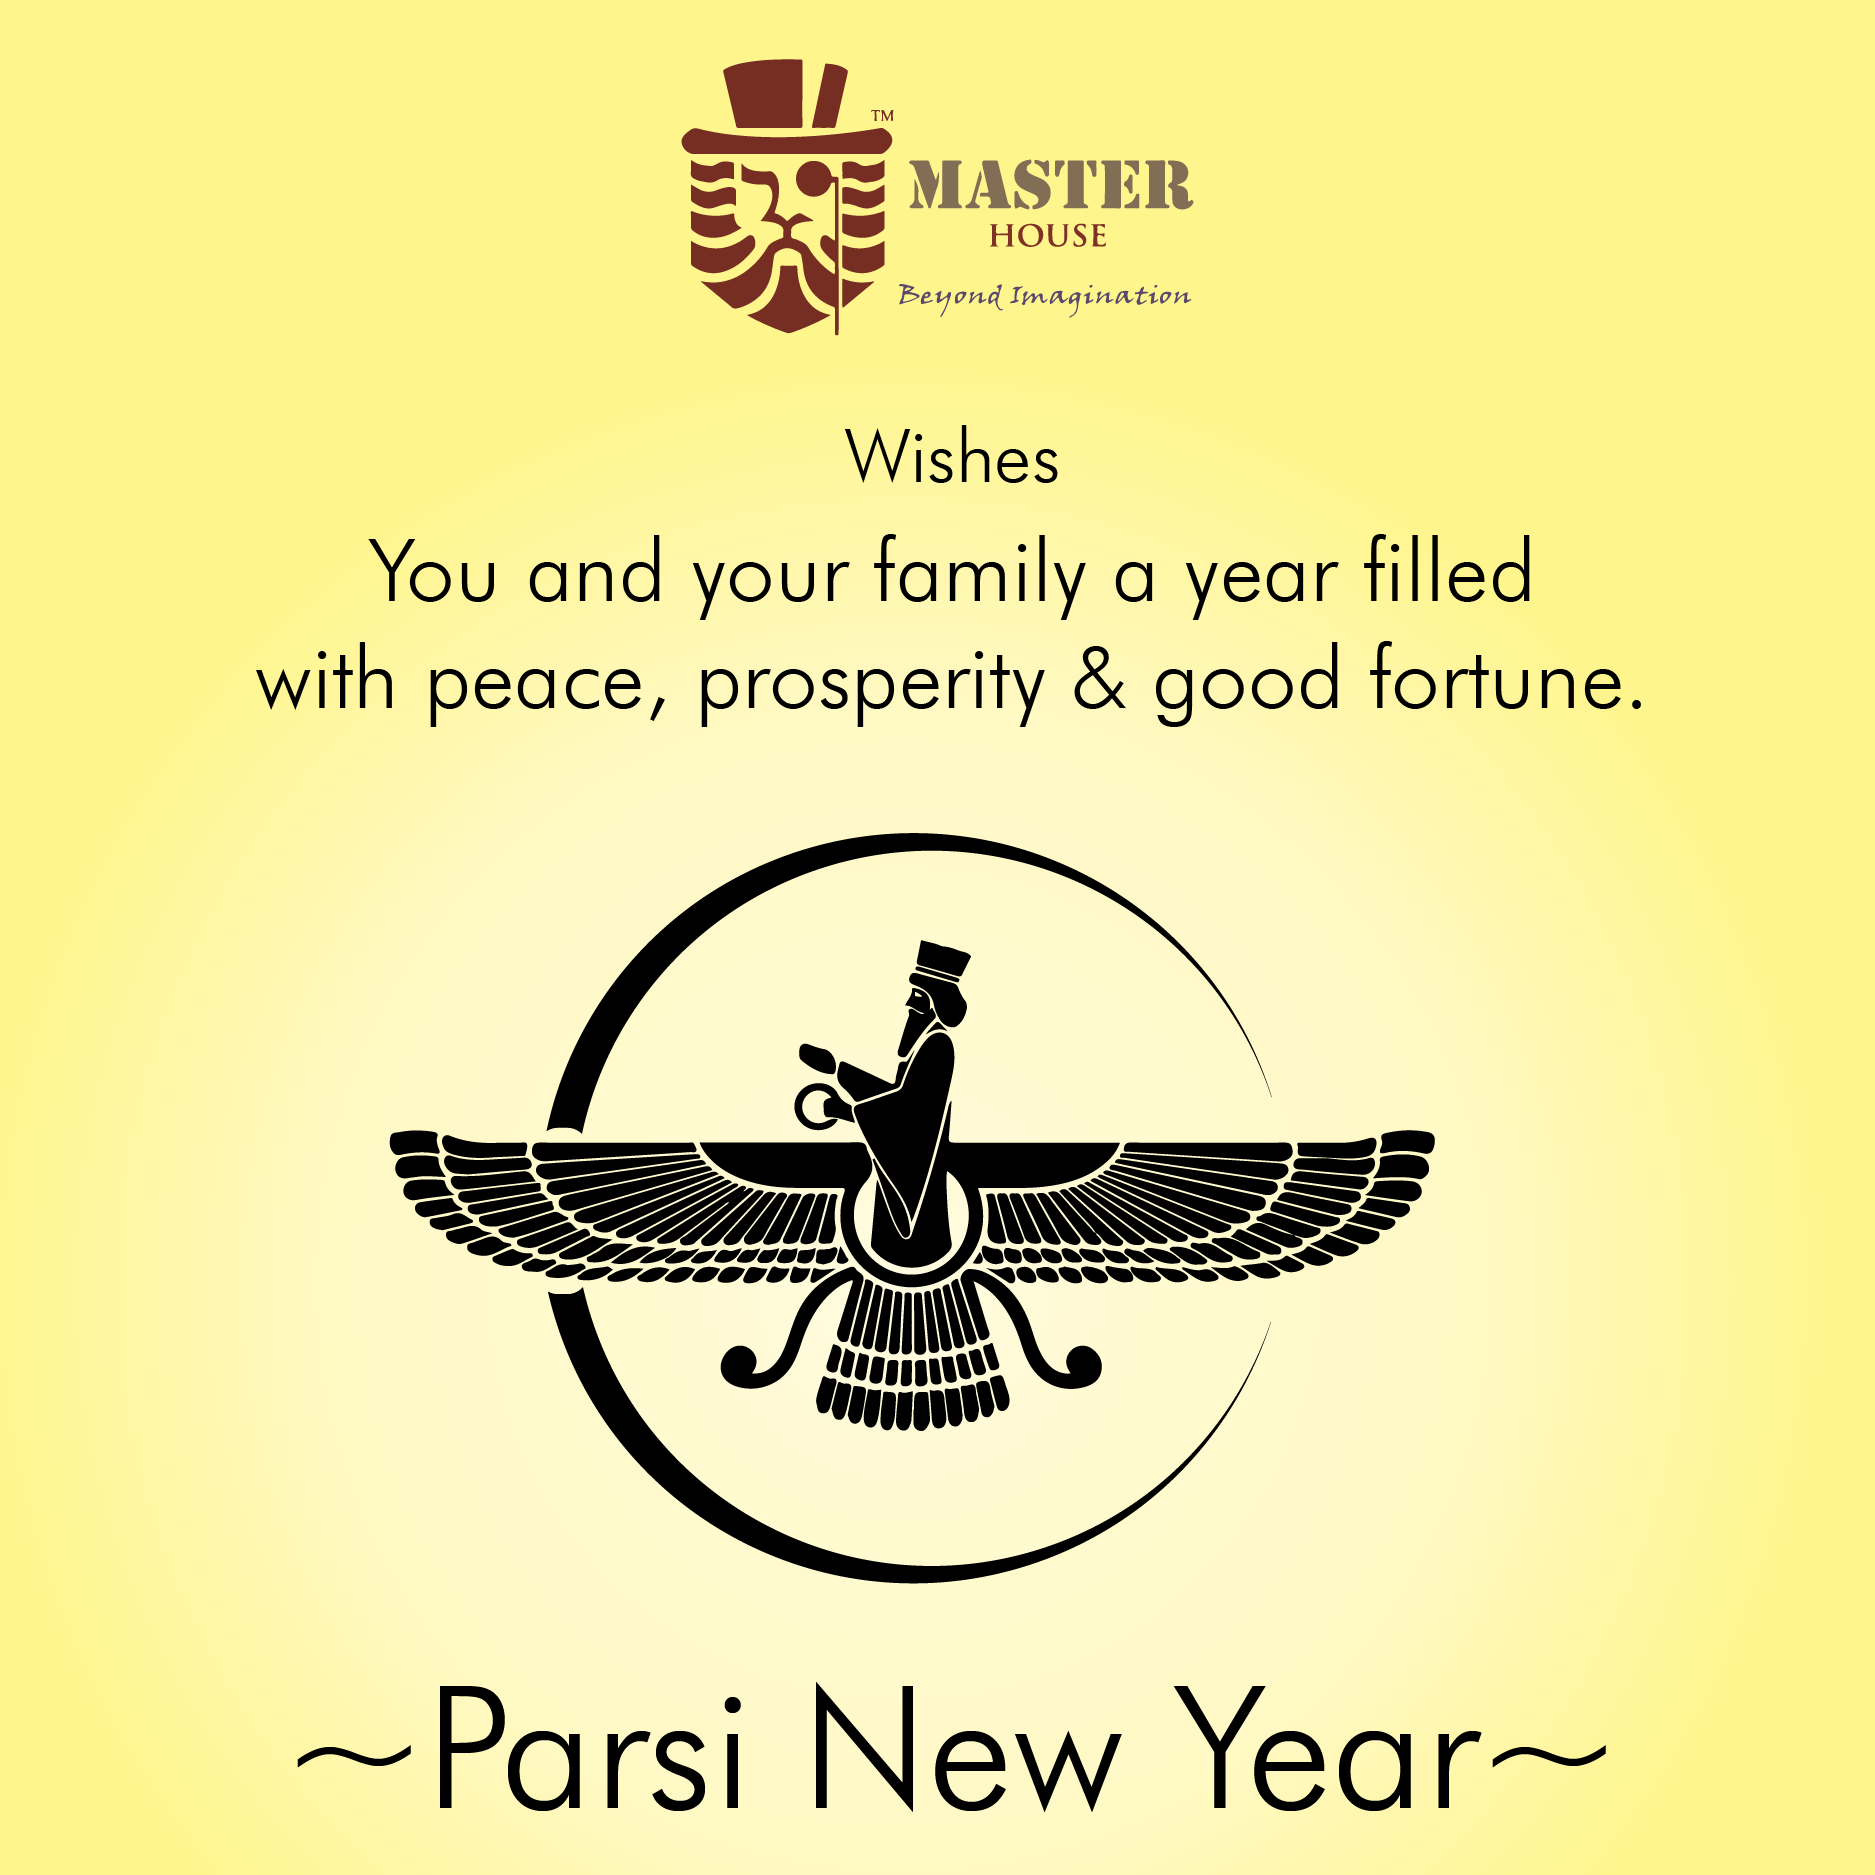 Master House Wishes You Happy Parsi New Year